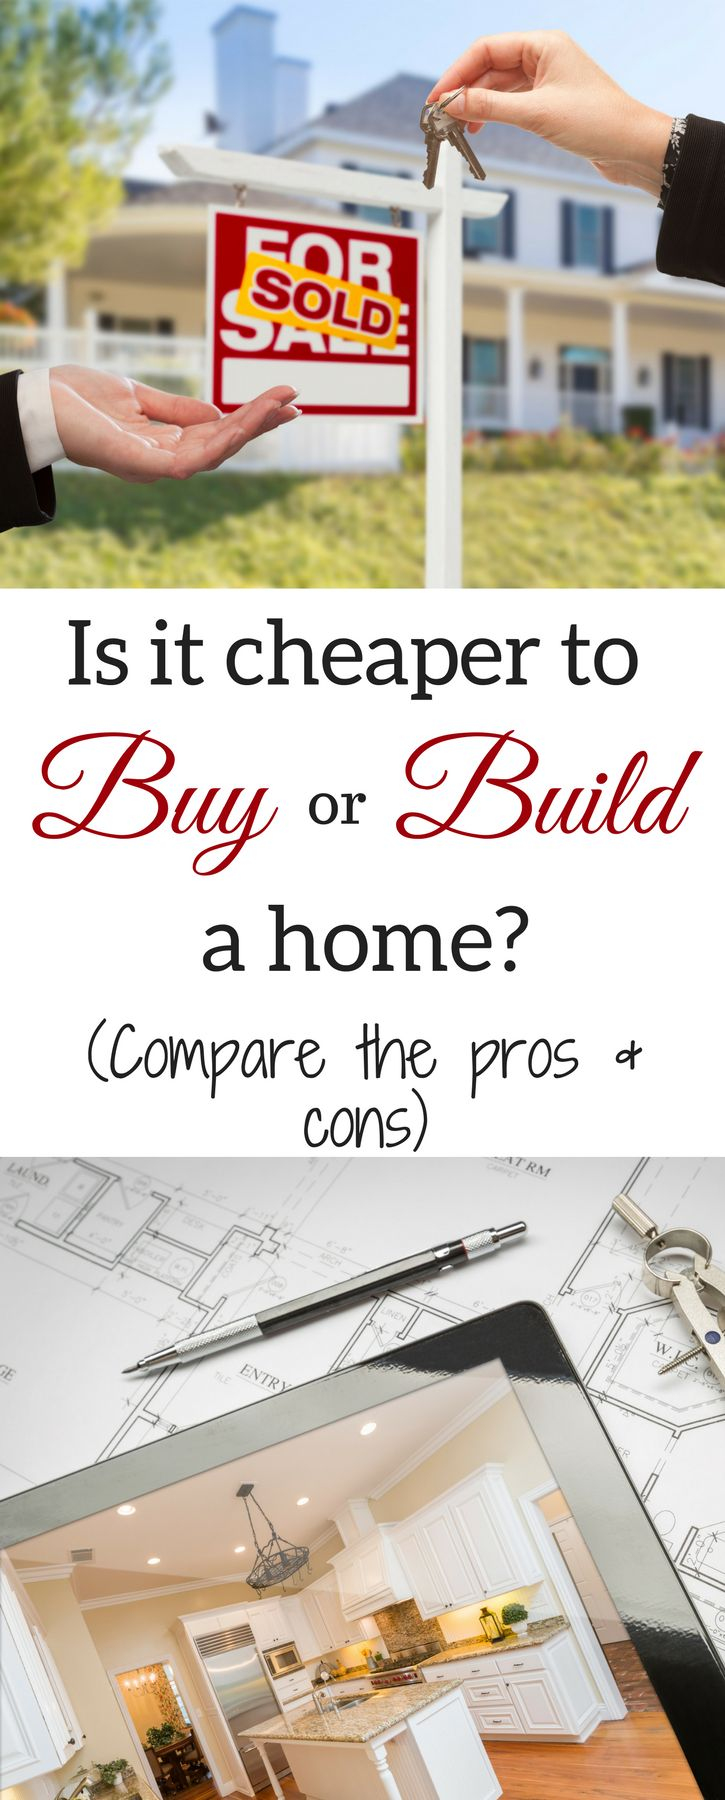 If you're planning to finally settle down in a house, you may be wondering if it's better to buy a house, or build a house. The best way to make that decision is to weigh the pros and cons of each. Here we lay out everything you need to know about buying an existing home compared with building one from scratch.